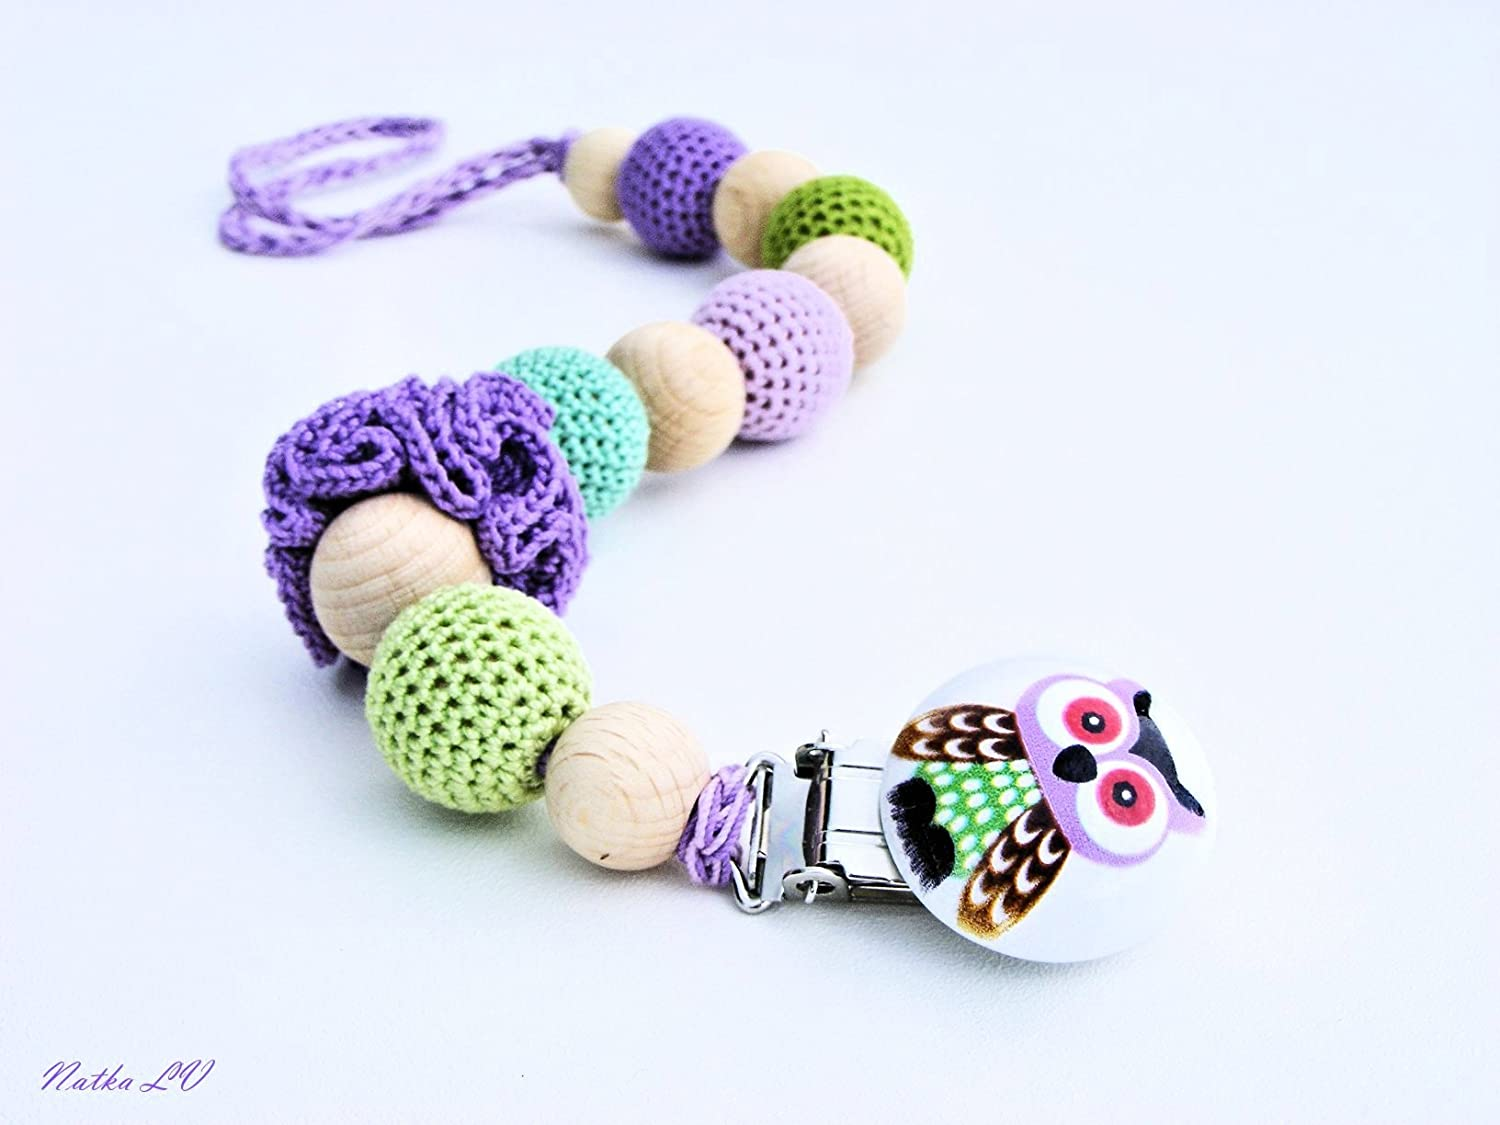 Owl pacifier clip, dummy chain, crochet pacifier holder, green purple crochet beads, natural teething toy, toy holder, natural, gift for baby, shower gift